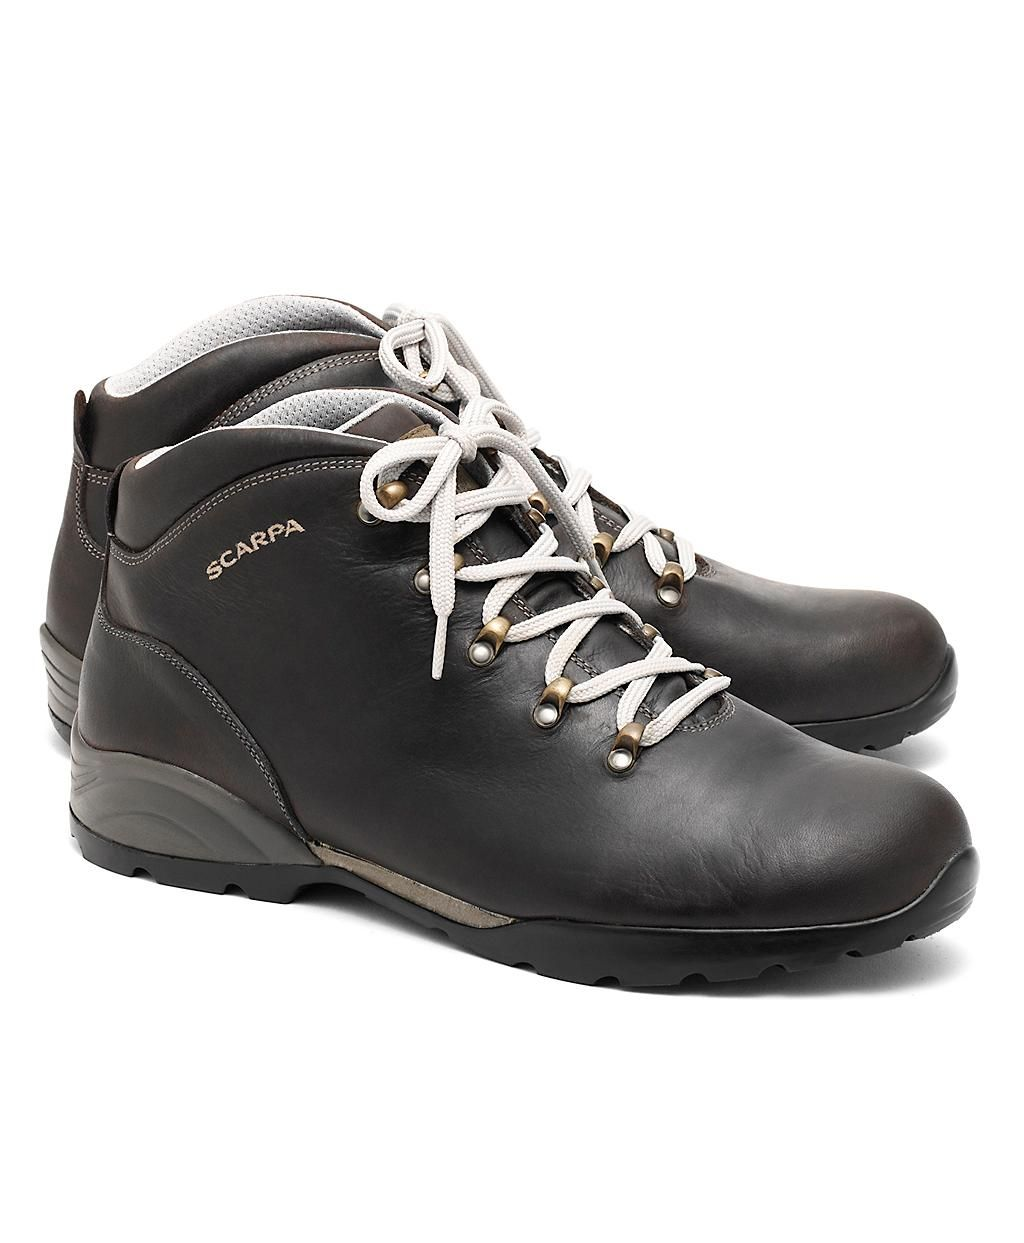 33fc5e02227 Cool SCARPA Hiking Boots at Brooks Brothers. | Style | Hiking boots ...